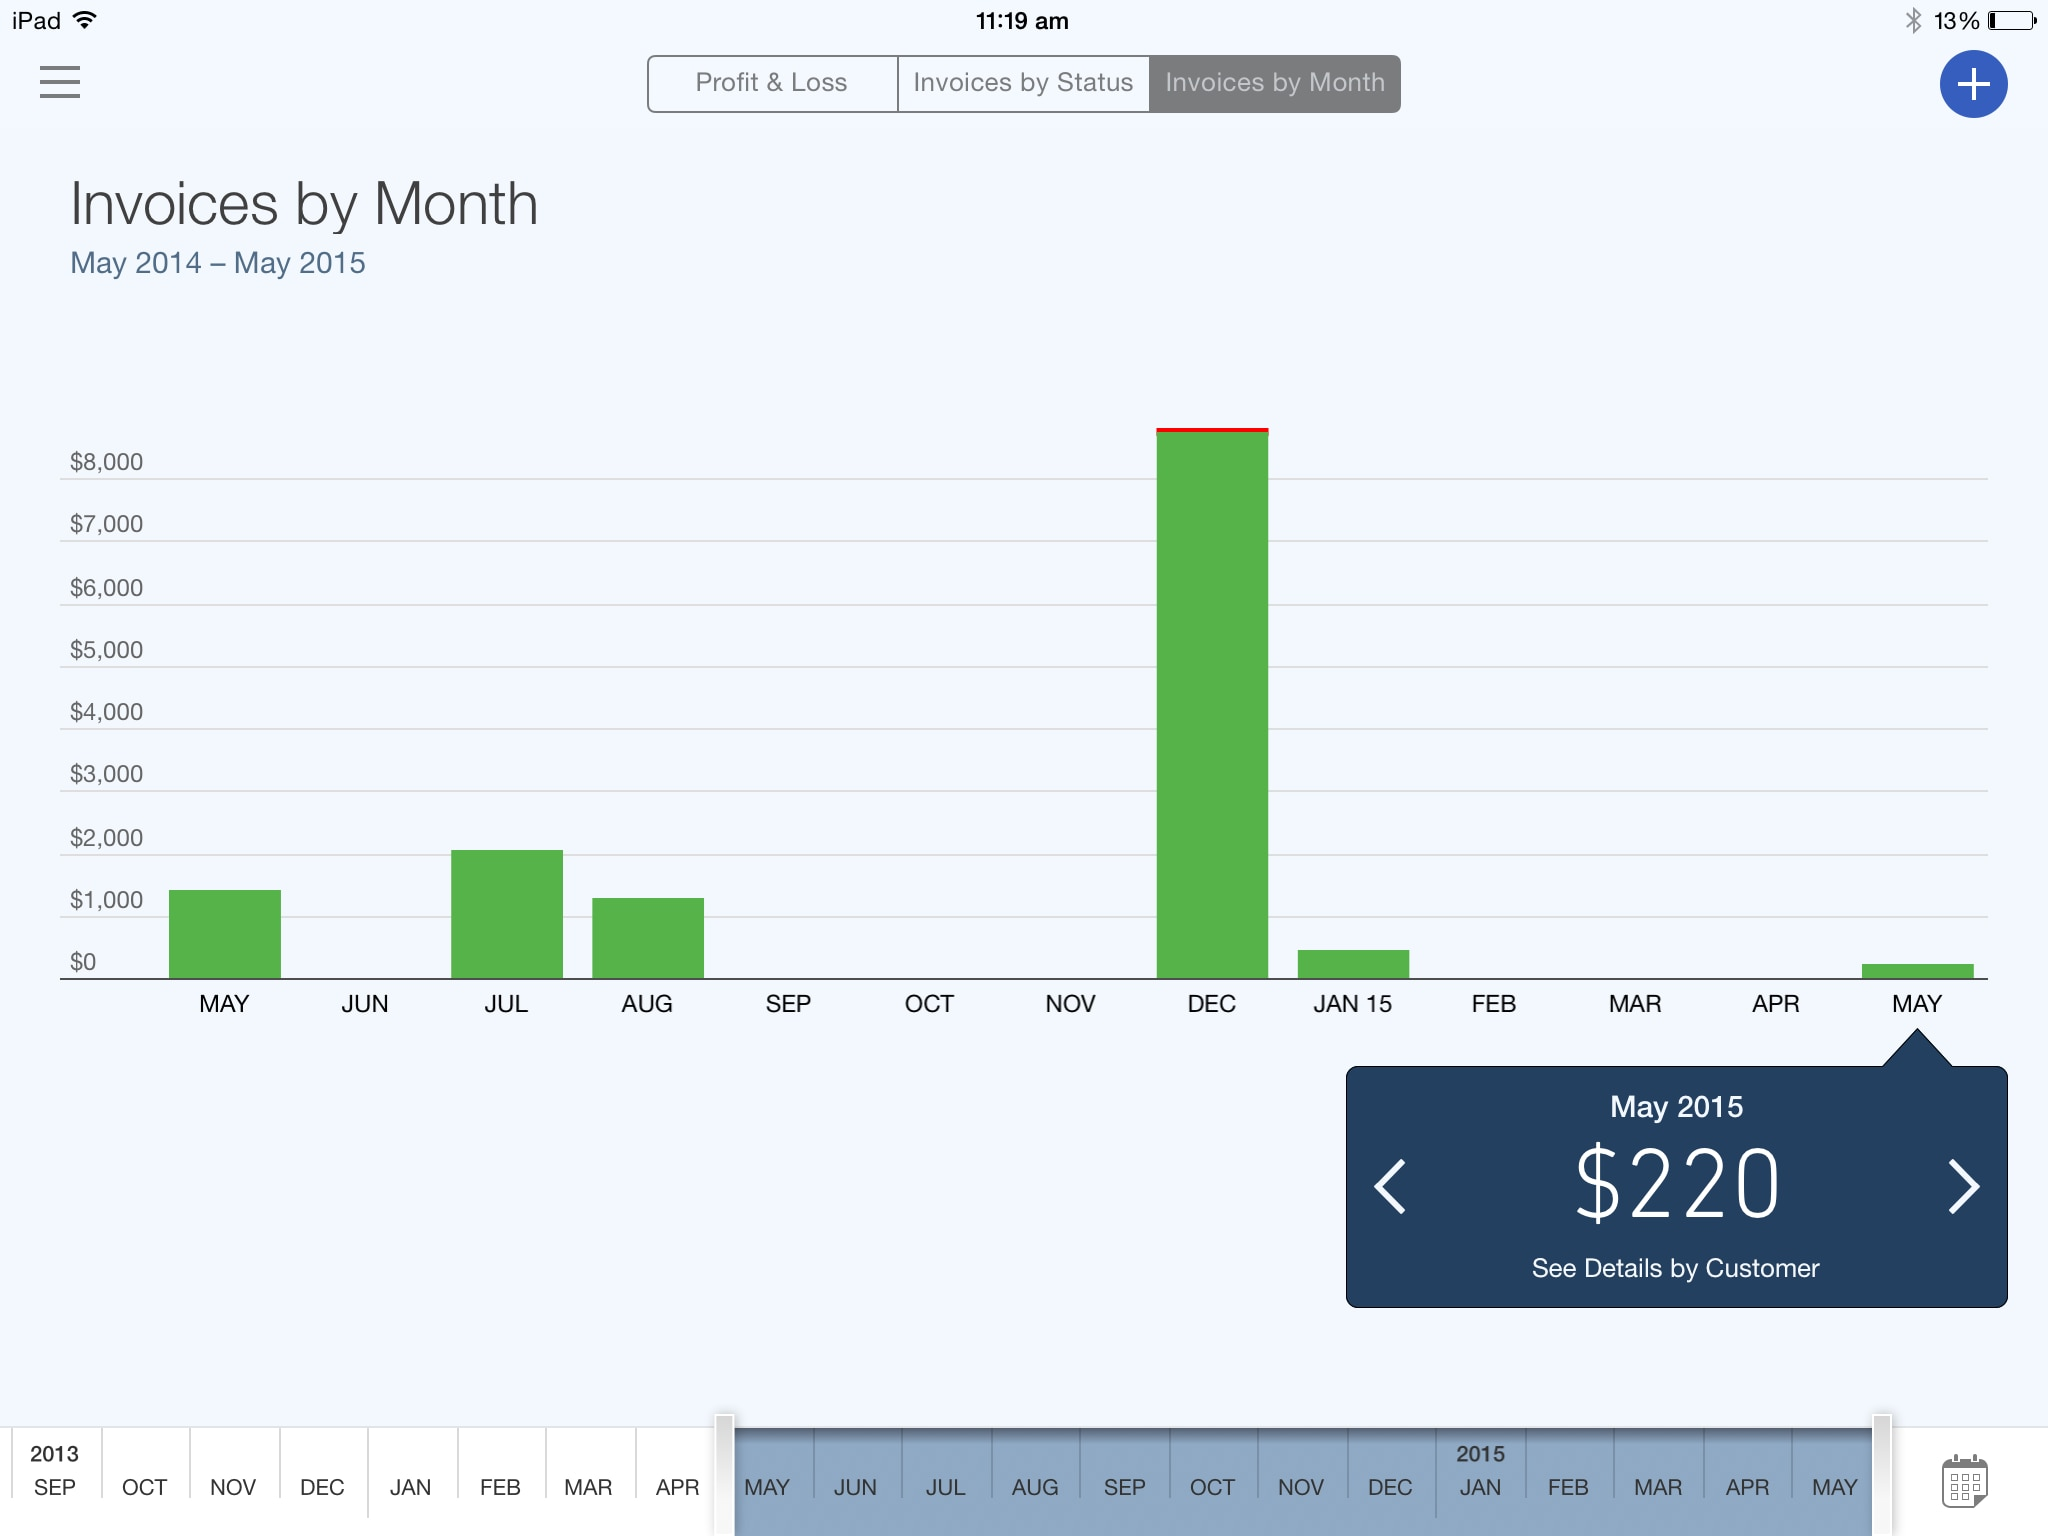 ipad invoices by month